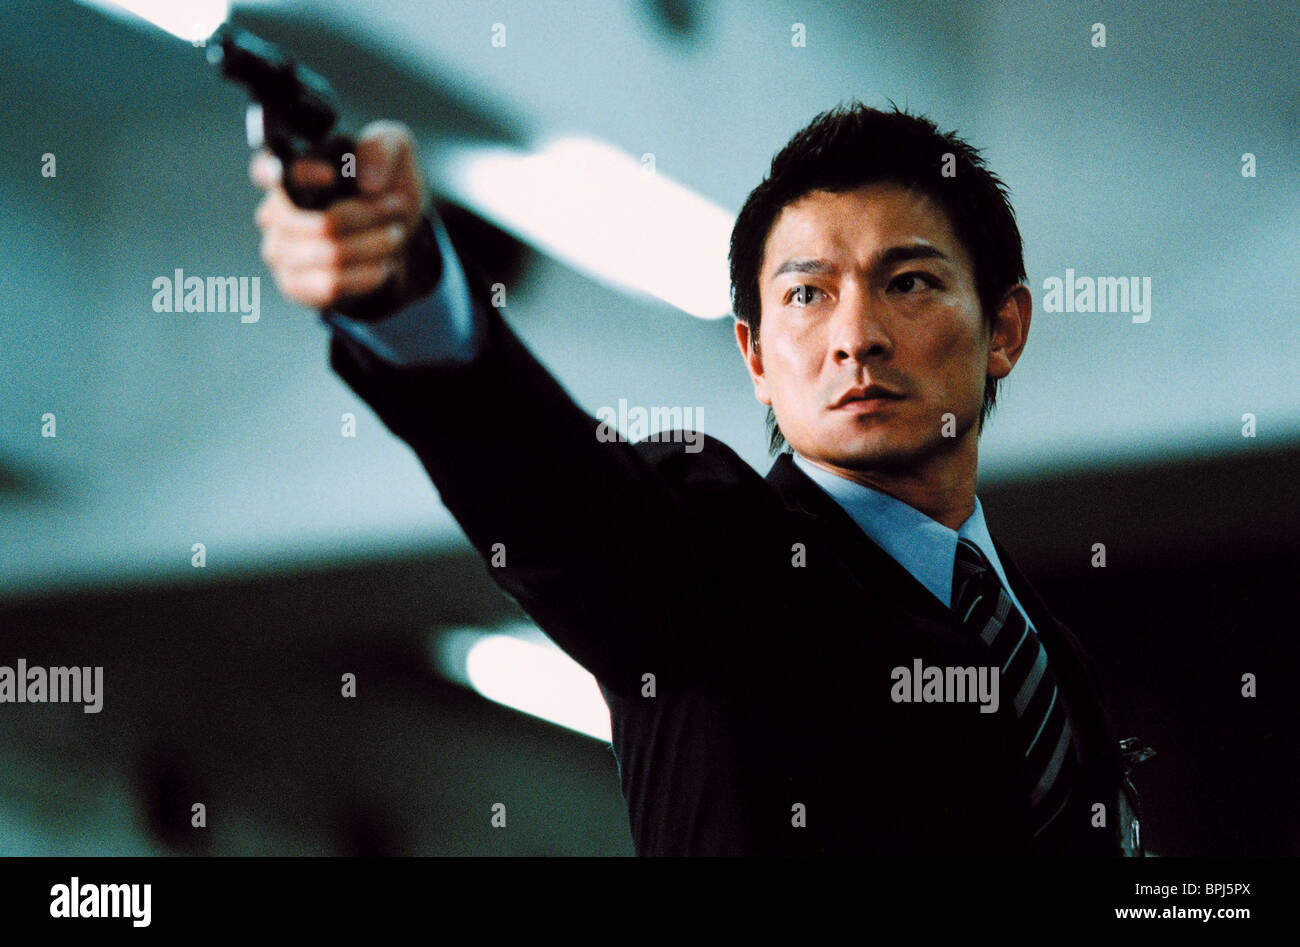 ANDY LAU INFERNAL AFFAIRS; I WANT TO BE YOU (2002) - Stock Image